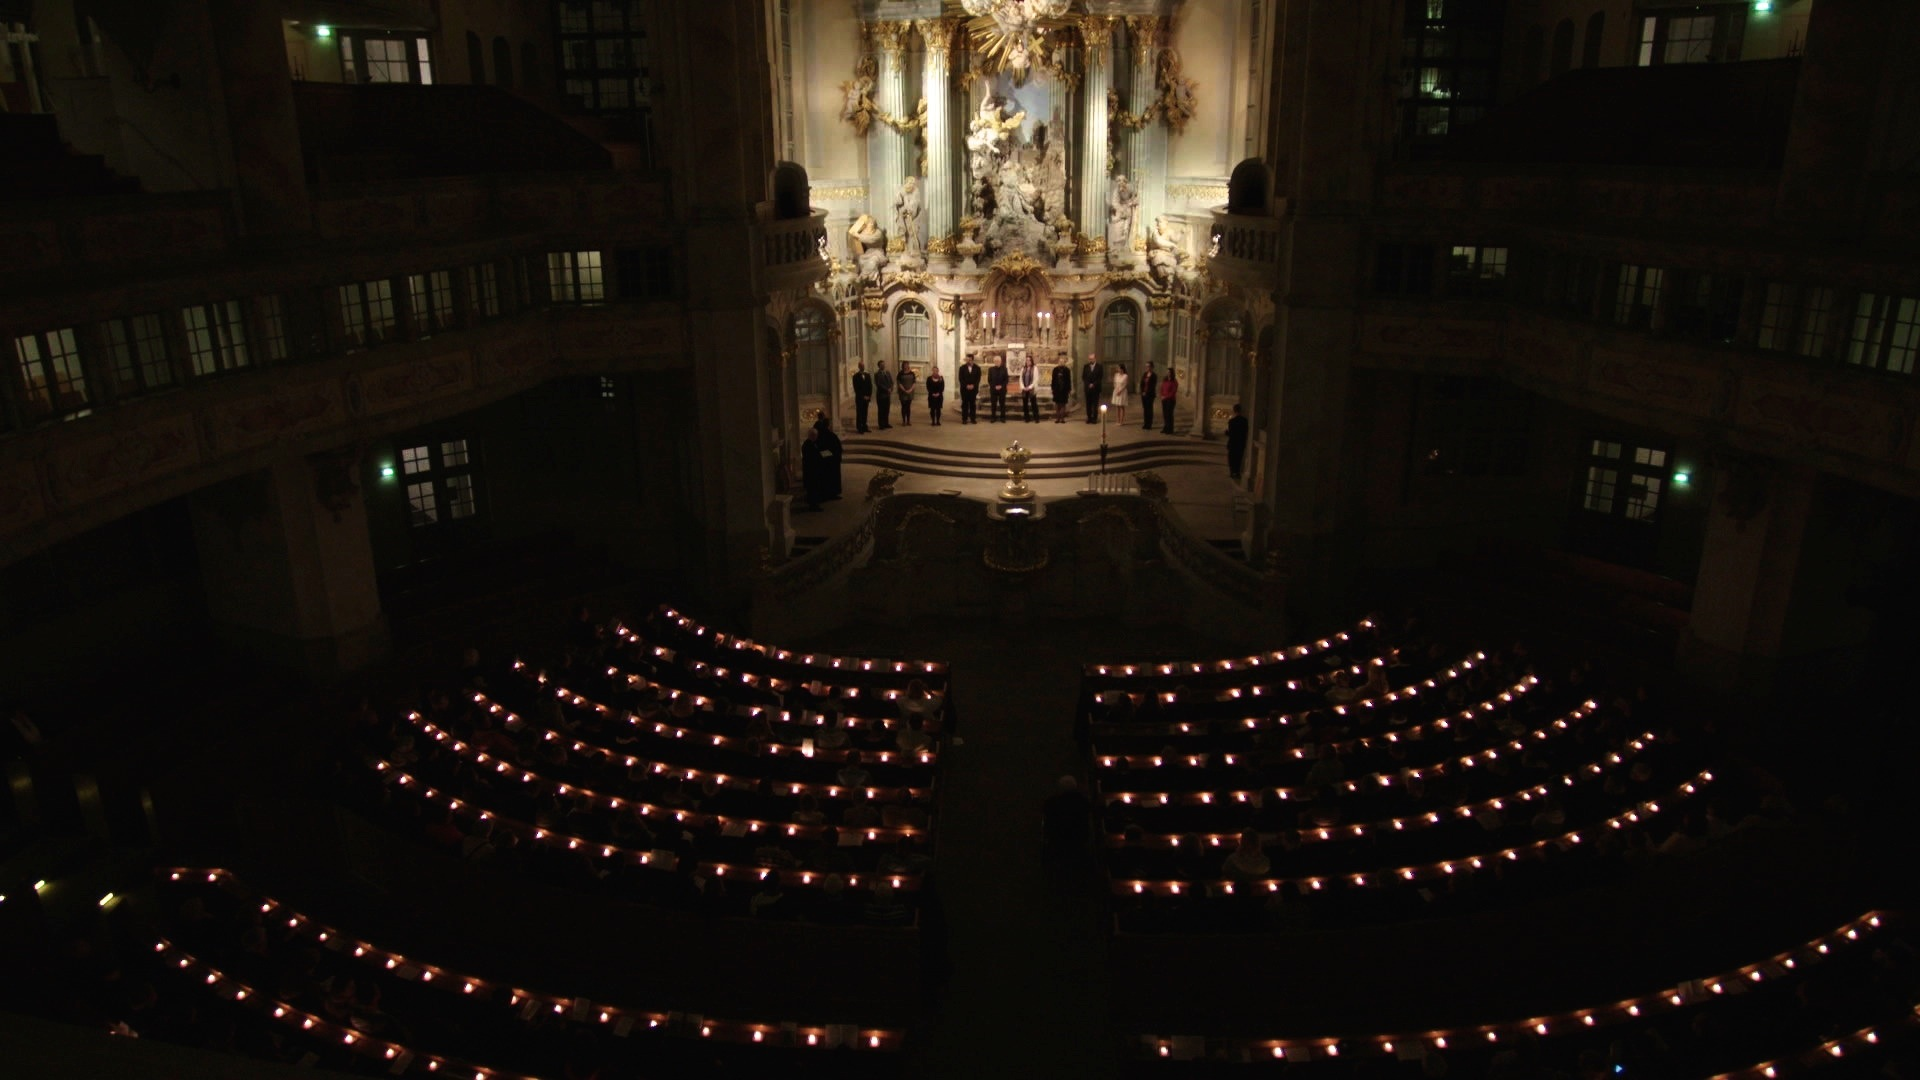 Frauenkirche by candlelight - Eron Sheean